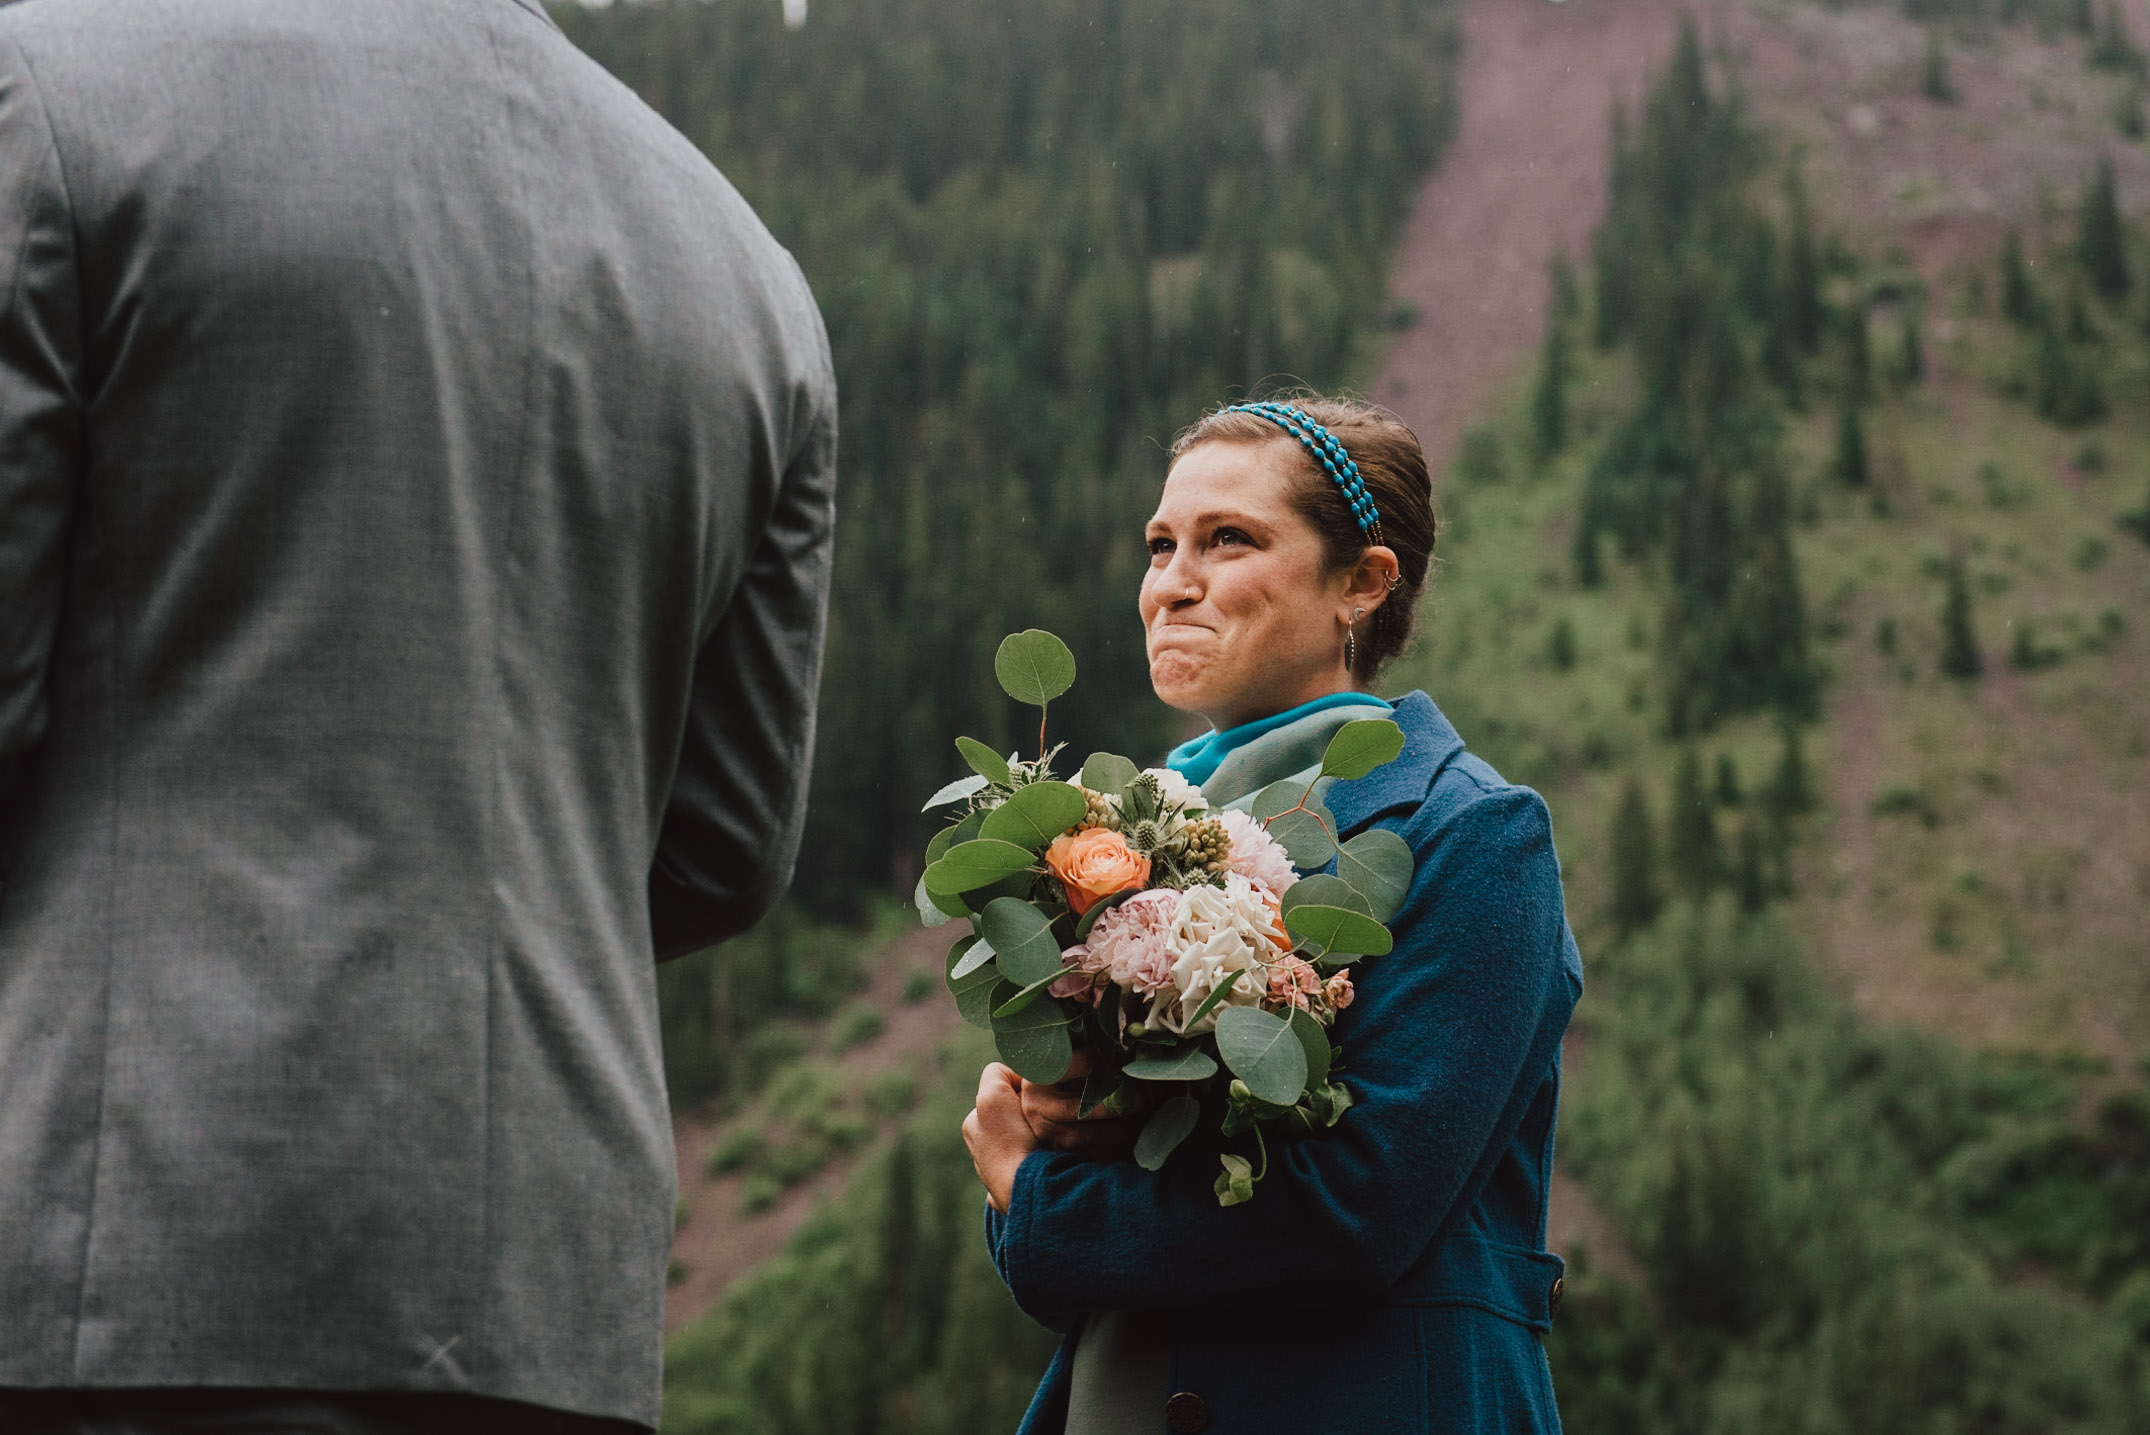 An emotional officiant.